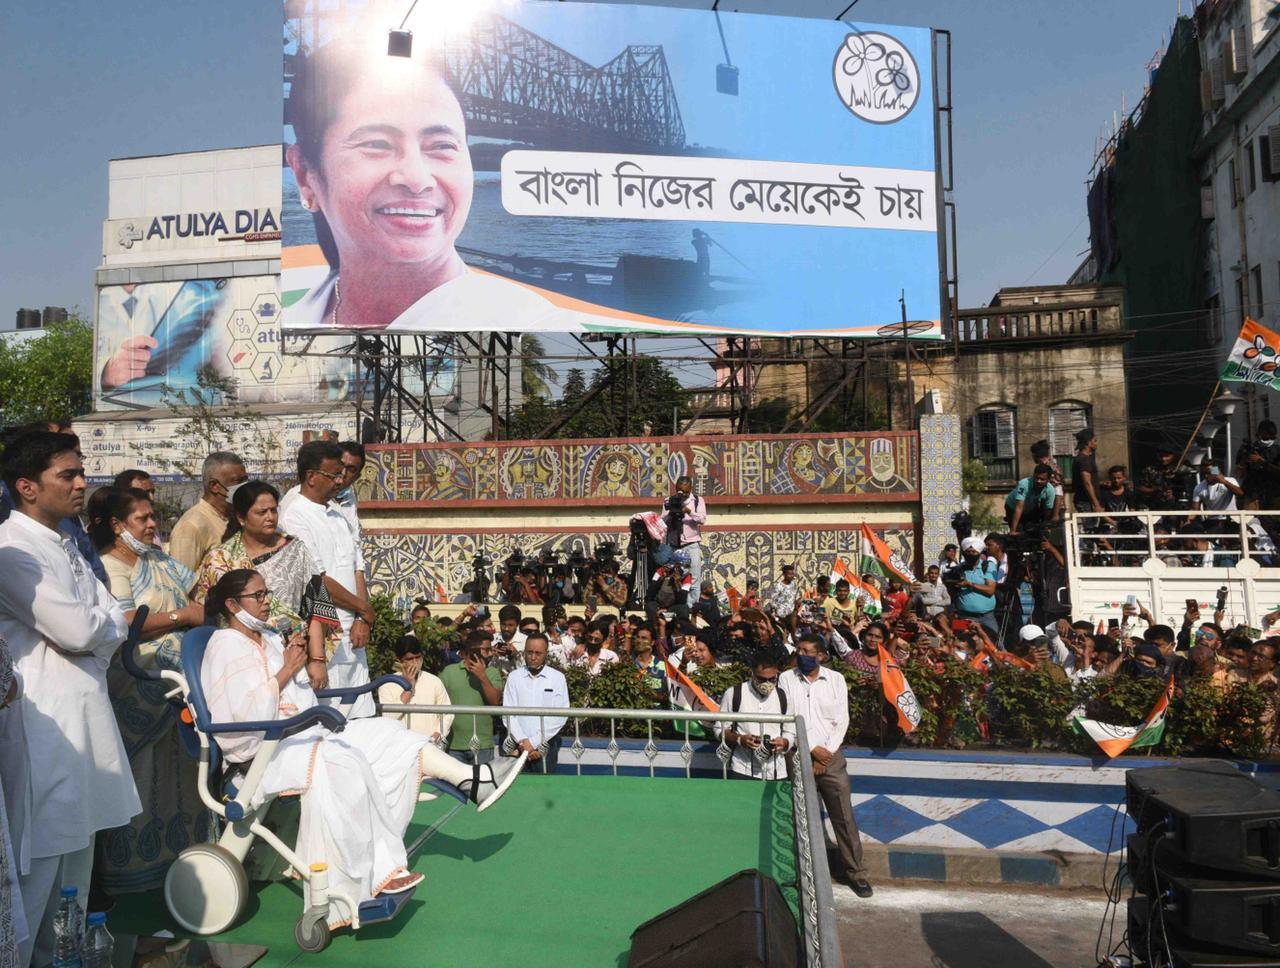 Mamata Banerjee's Wheelchair Rally At Kolkata